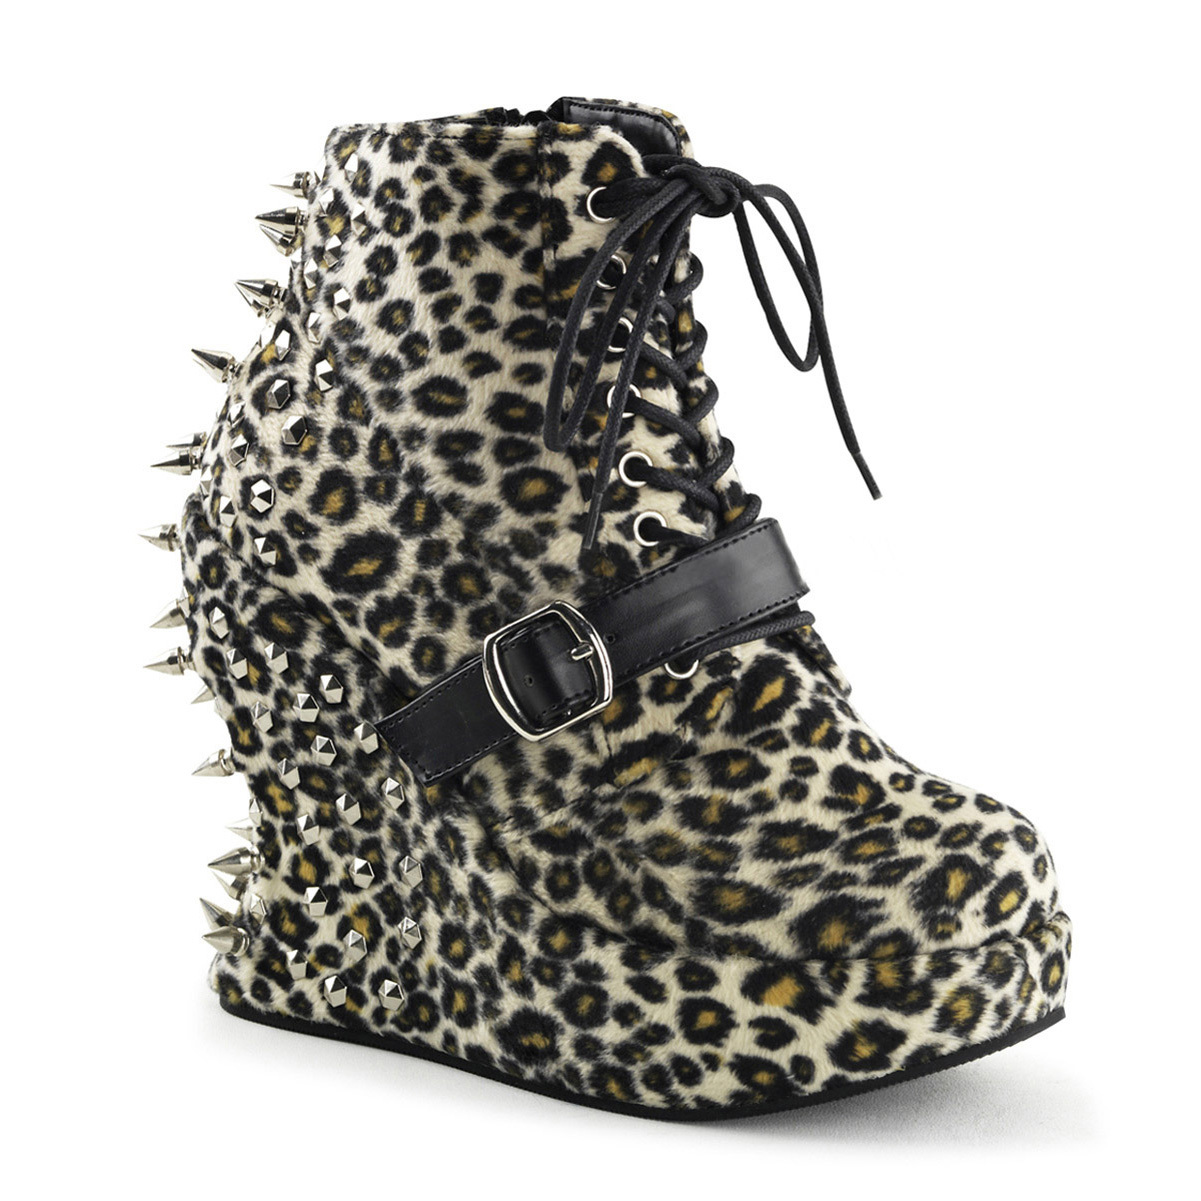 Womens Furry Leopard Print Studded Ankle Boots 5'' Wedge Heels and Spike Detail